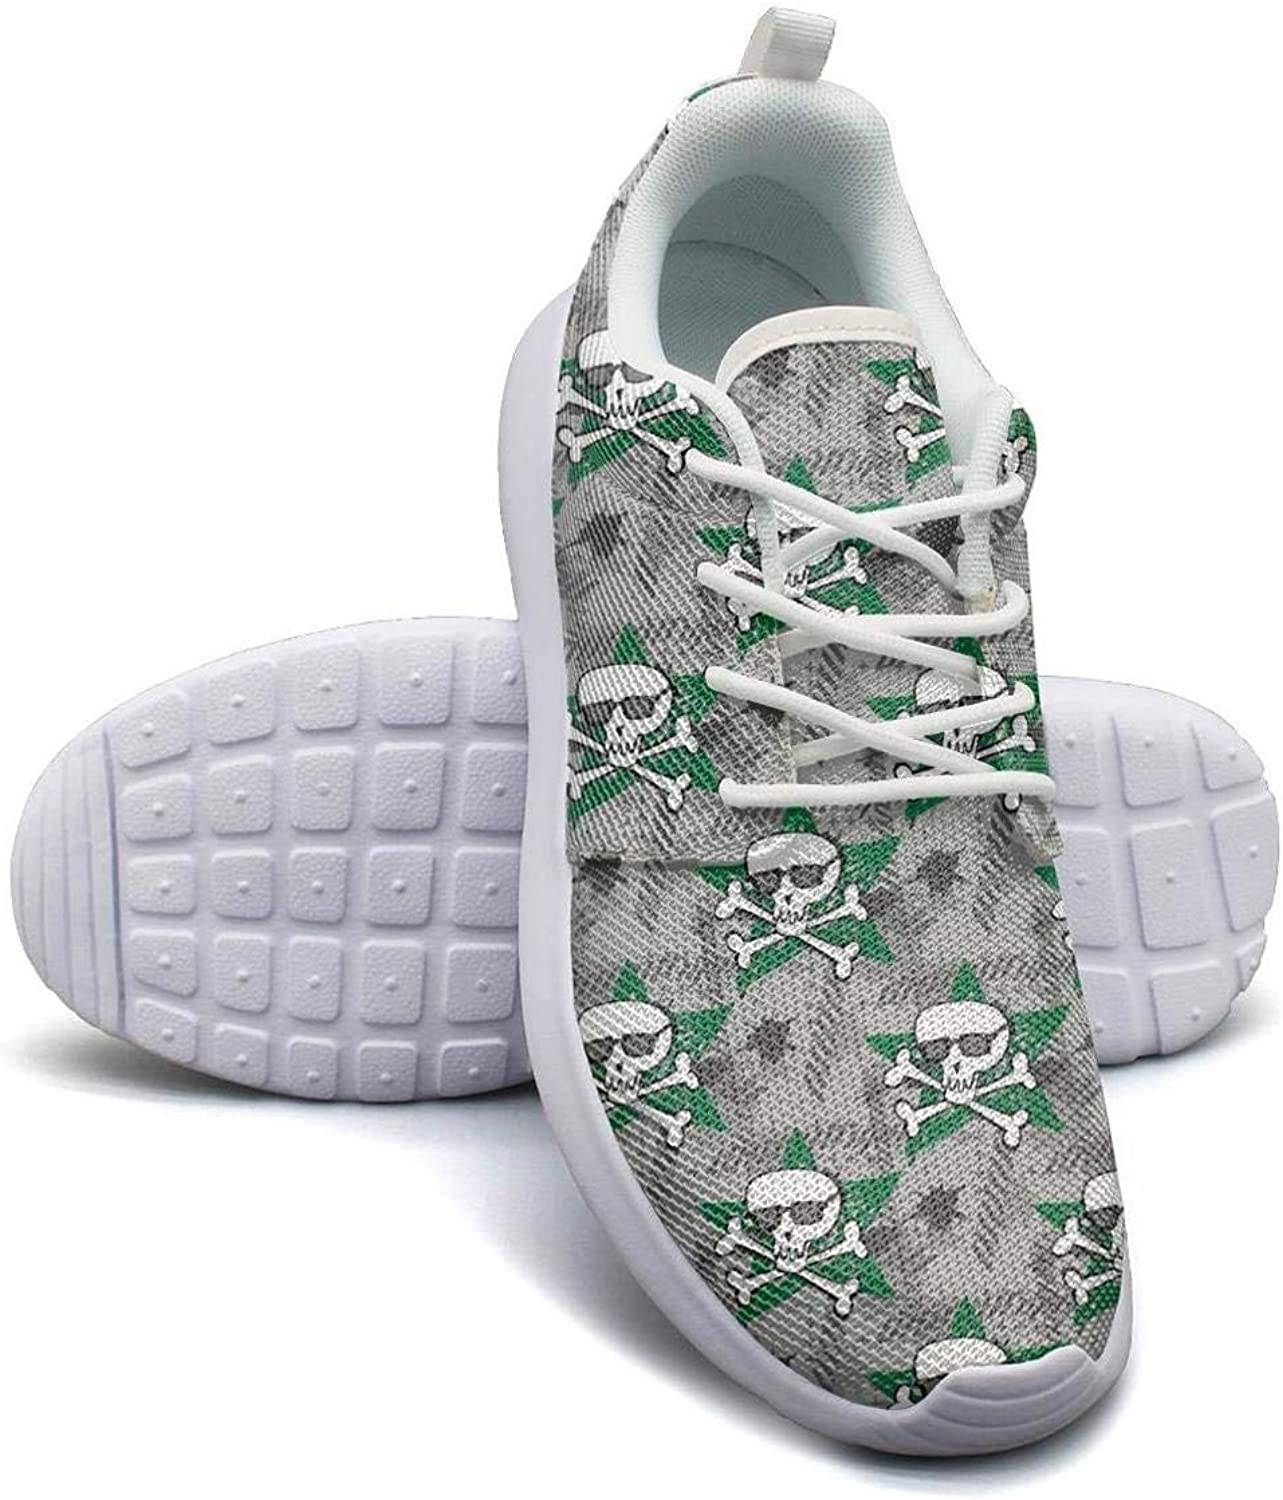 Gjsonmv Hipsters Skull Print mesh Lightweight shoes for Women Summer Sports Track Sneakers shoes